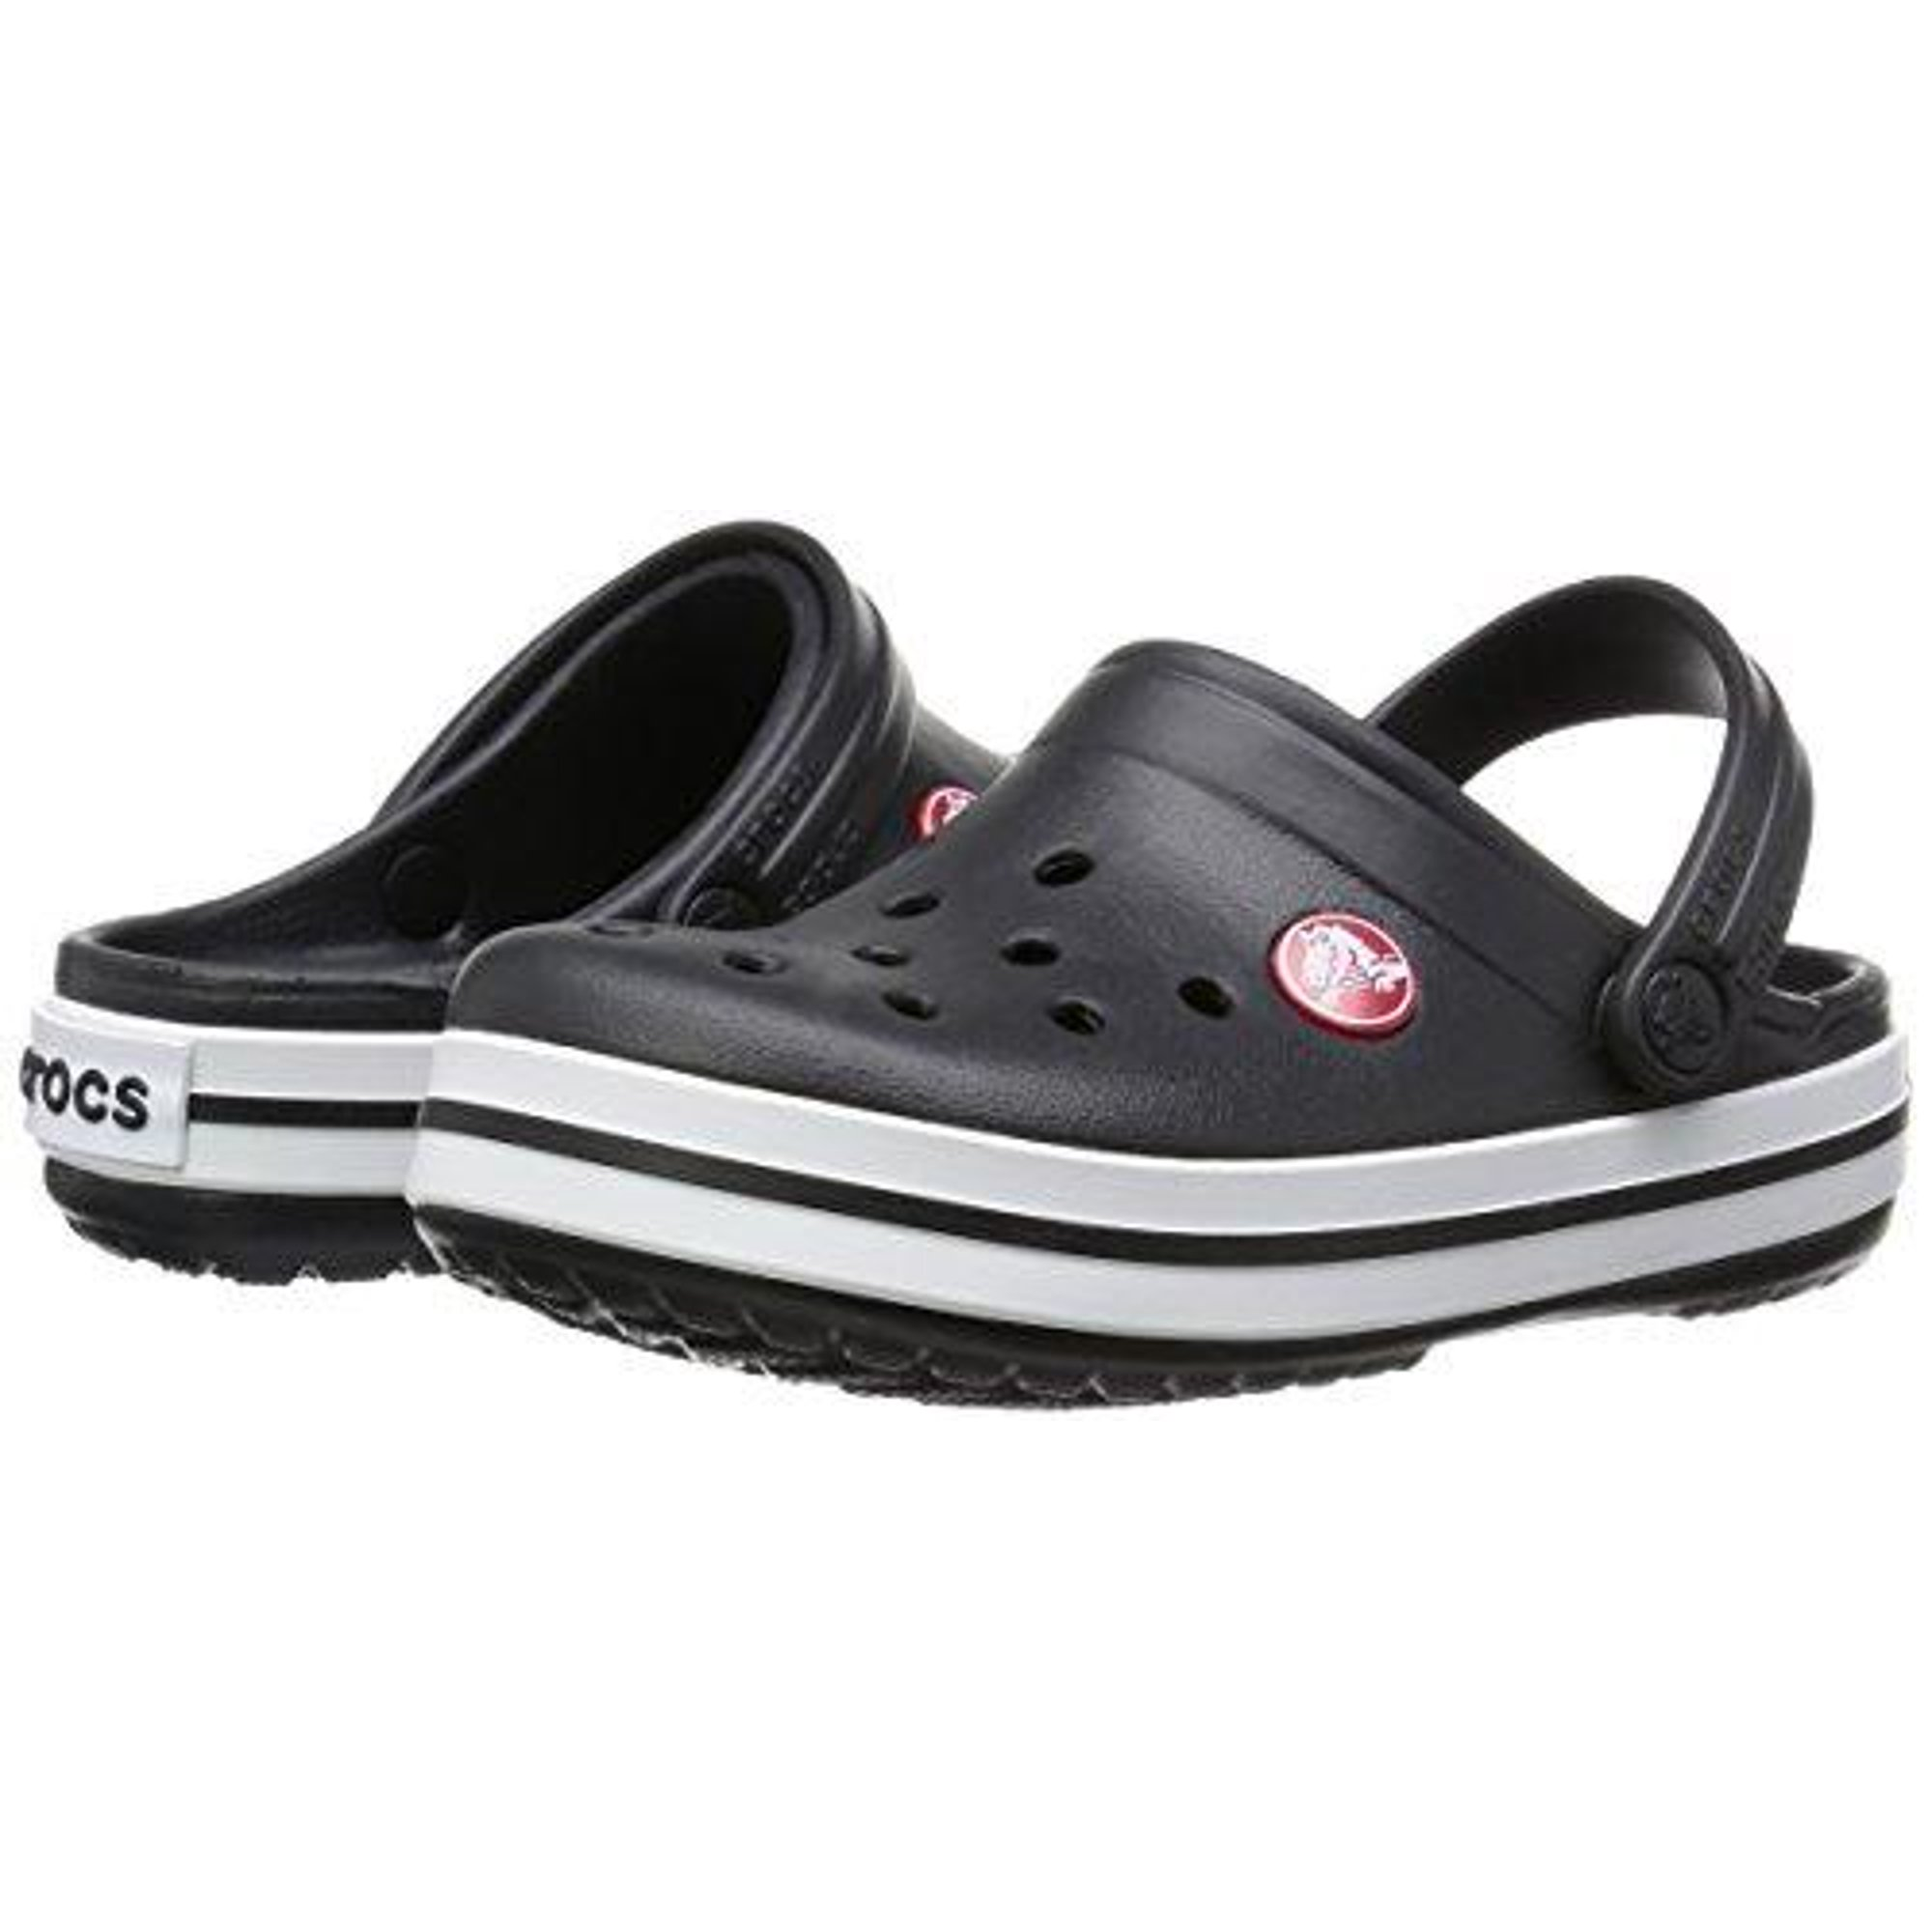 ee7fb389ccbd6 Buy Crocs Boy's Crocband Black Ankle-High Flat Shoe - 10M | Cheapest ...